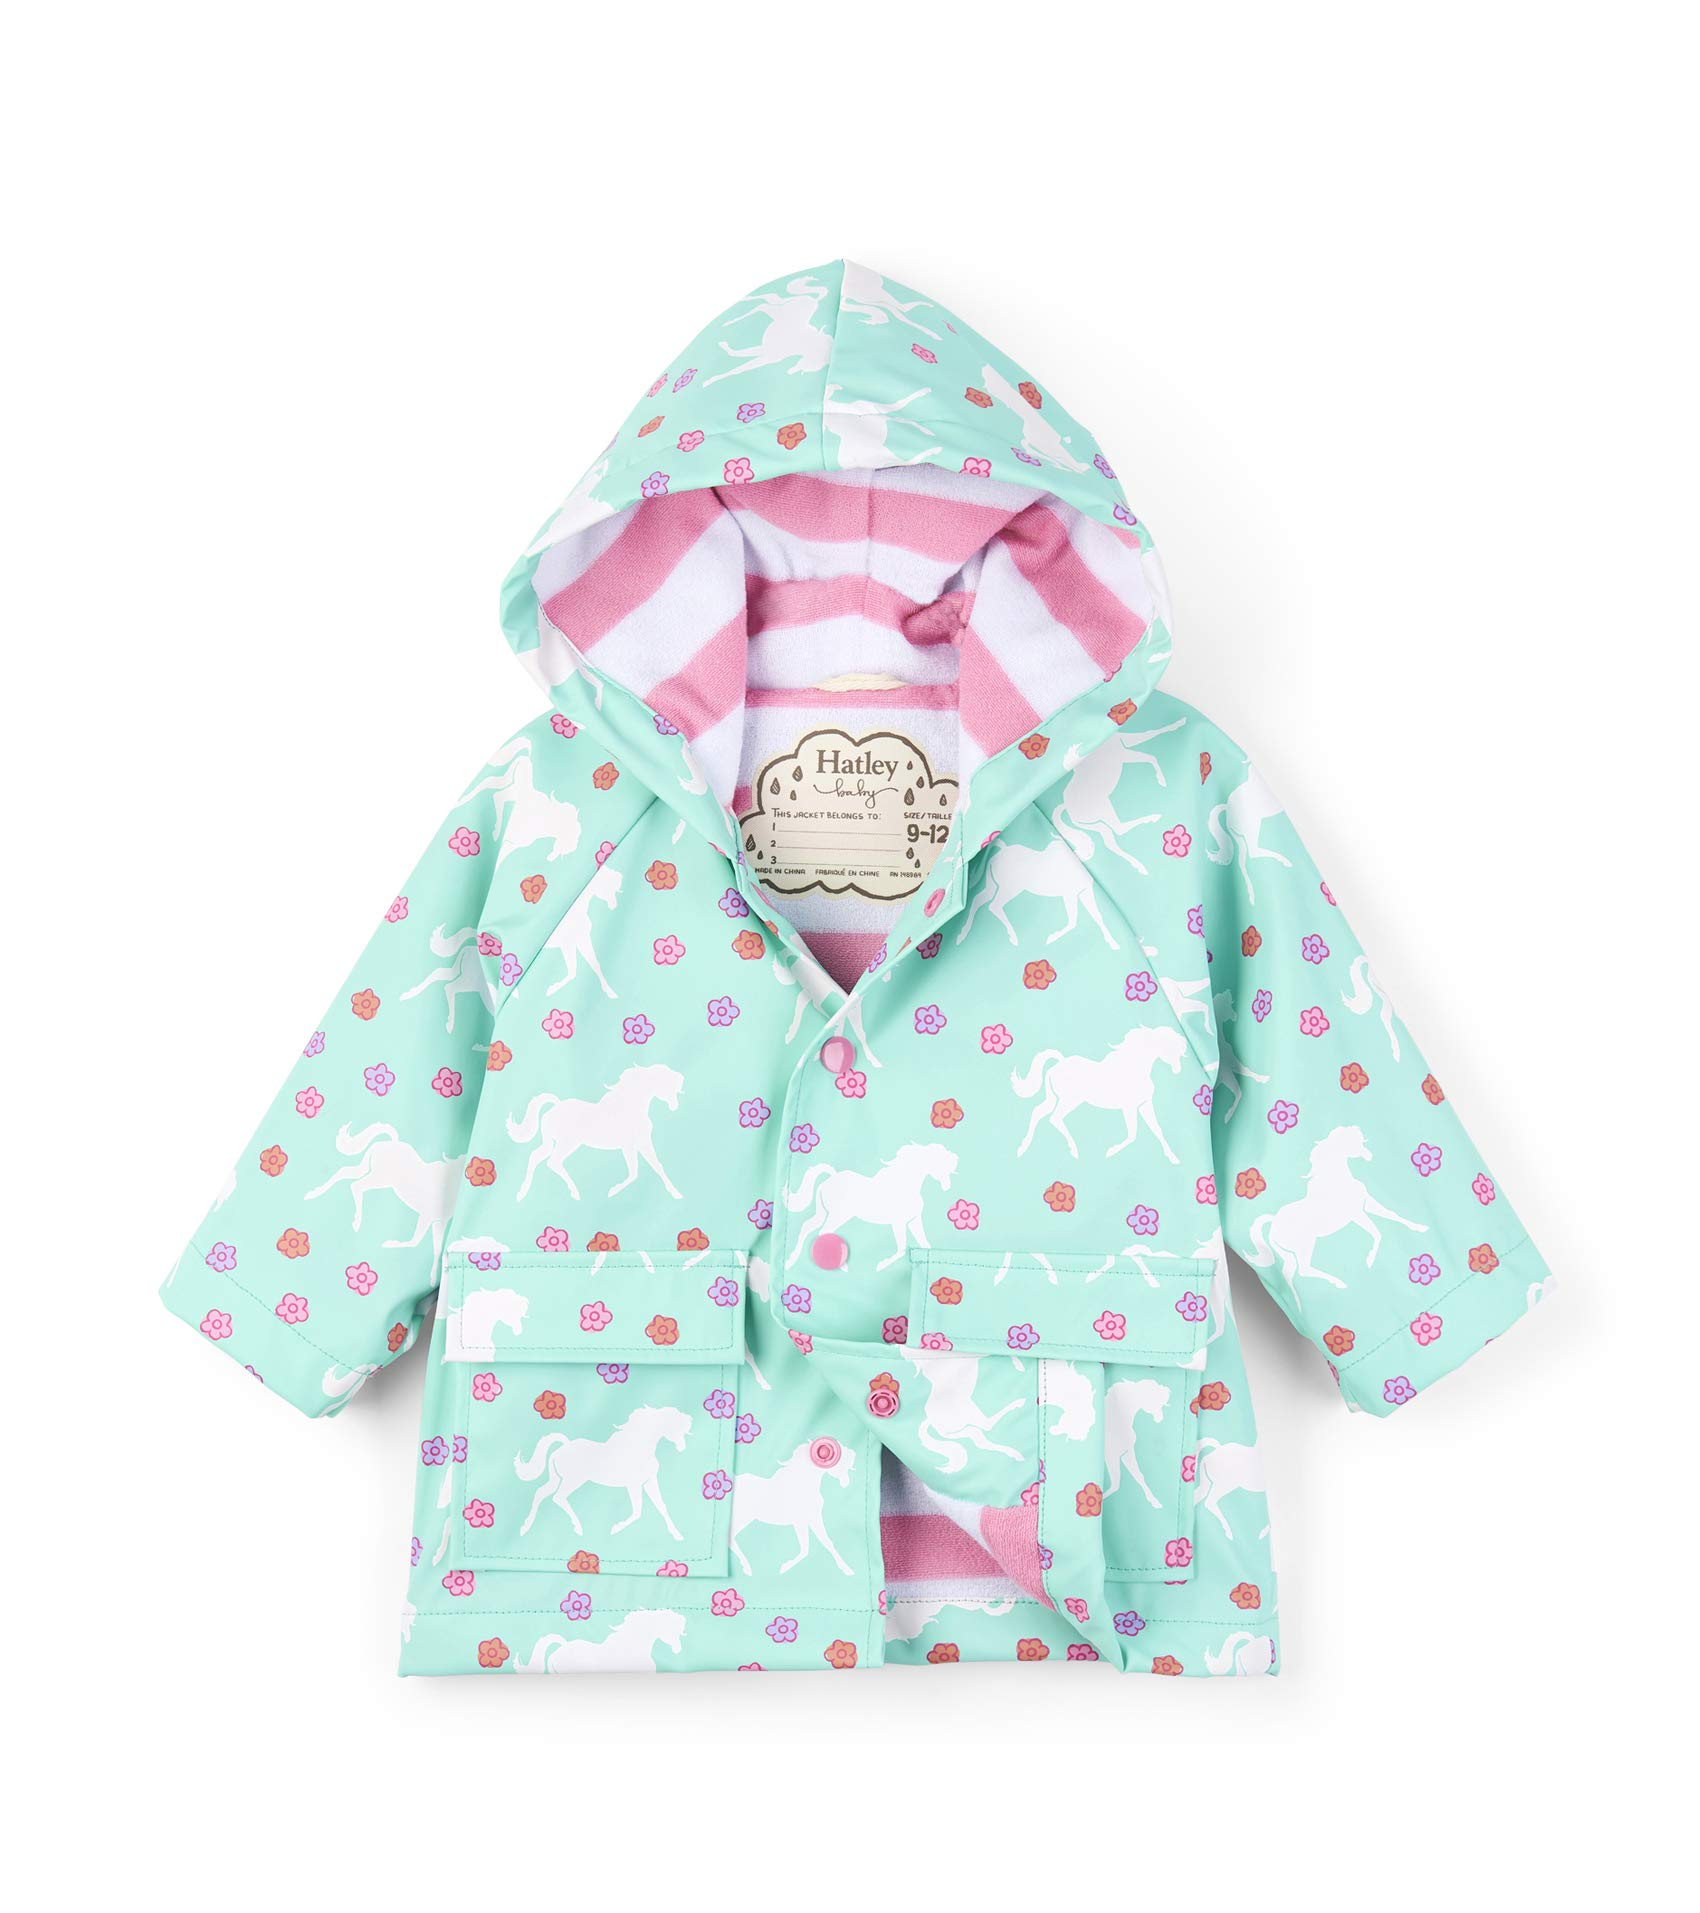 Hatley Baby Girls Printed Raincoats, Galloping Horses, 9-12 Months by Hatley